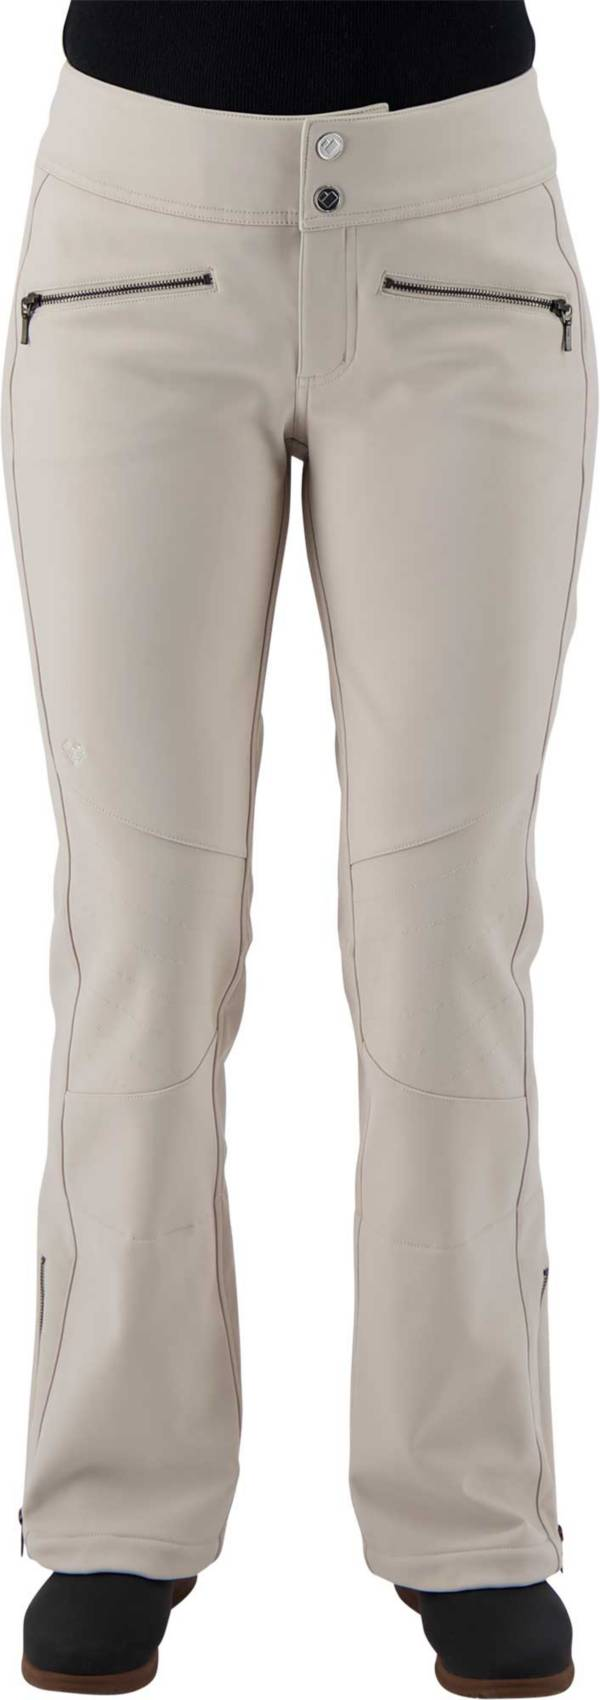 Obermeyer Women's Clio Softshell Snow Pants product image